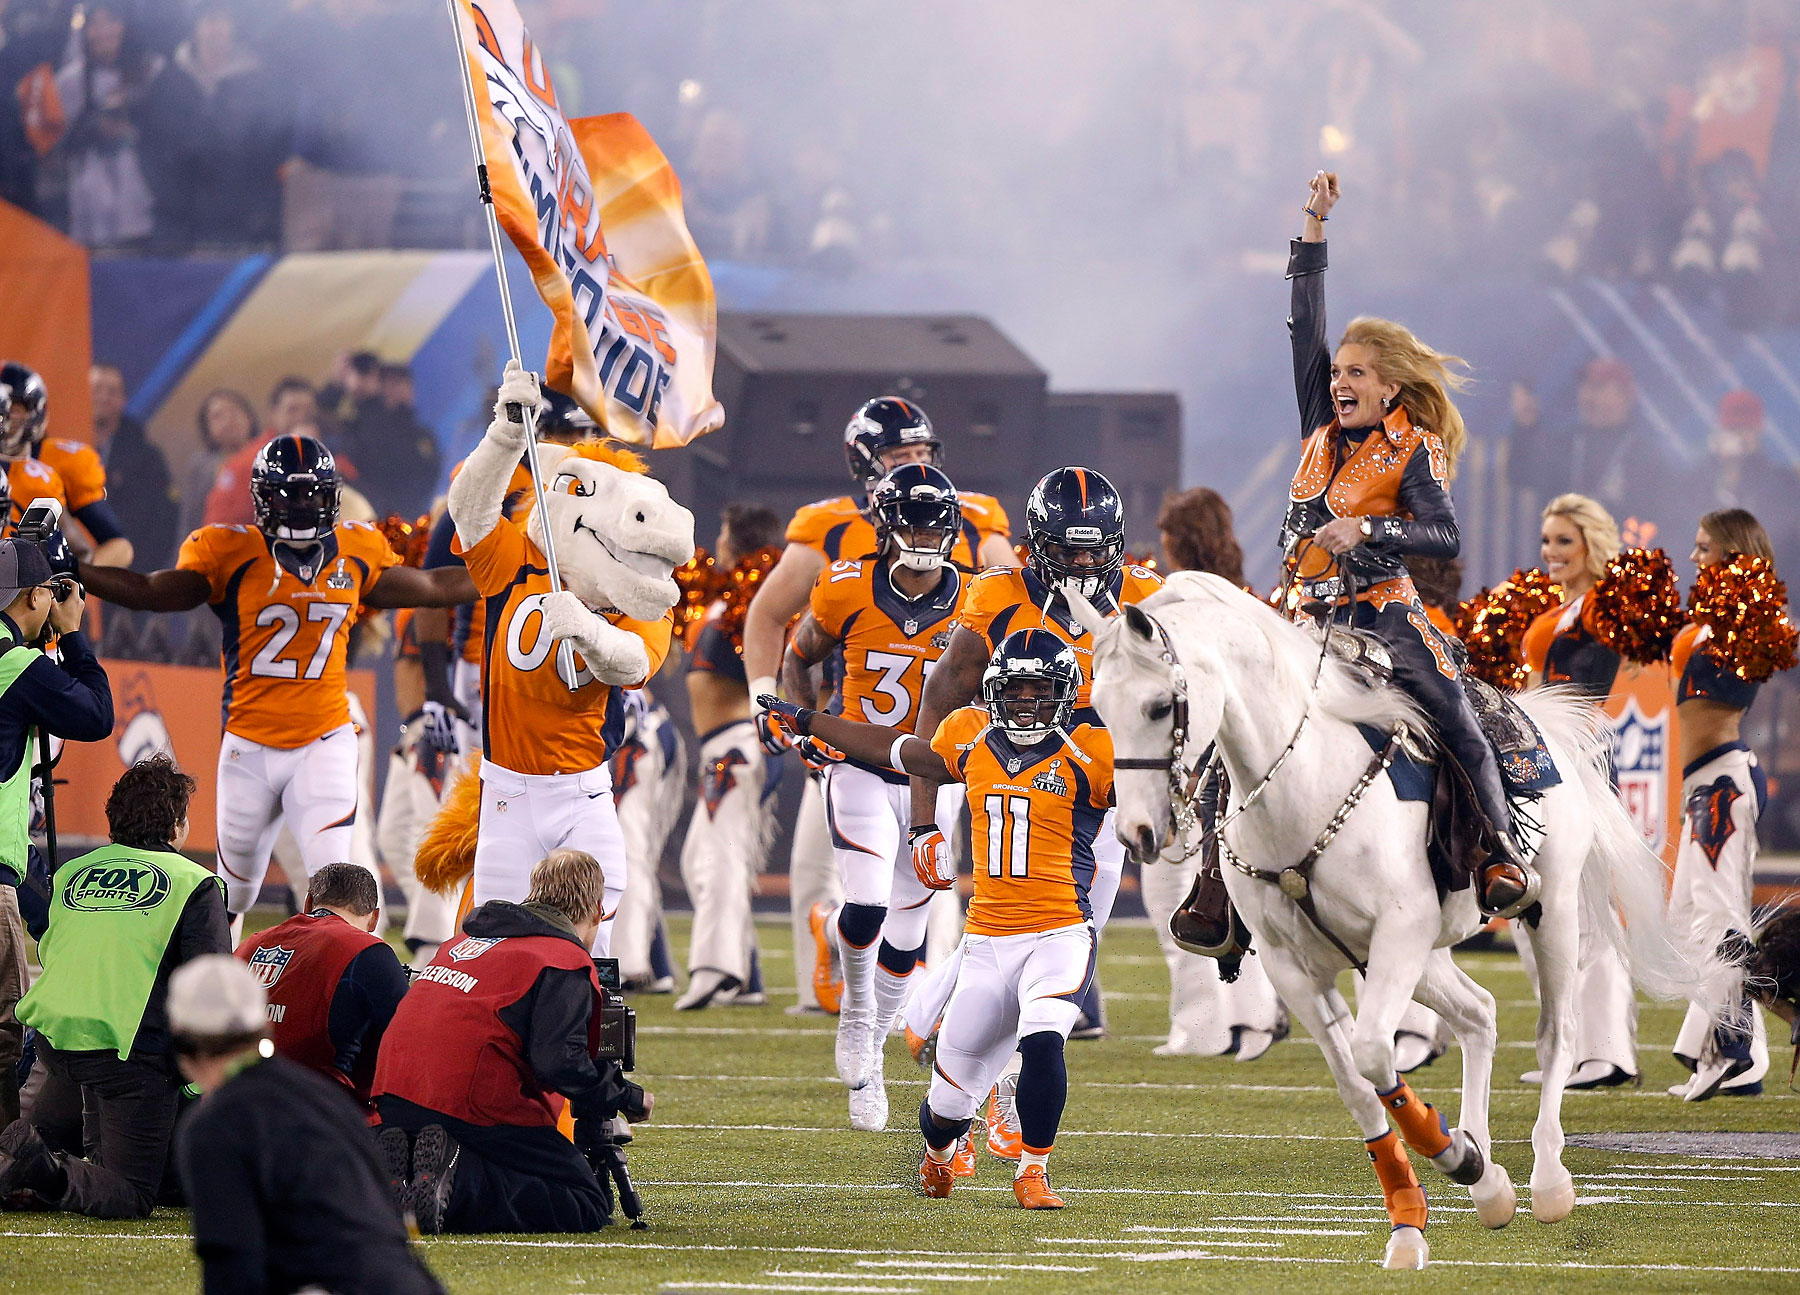 Thunder leads the Denver Broncos players onto the field before the NFL Super Bowl XLVIII.